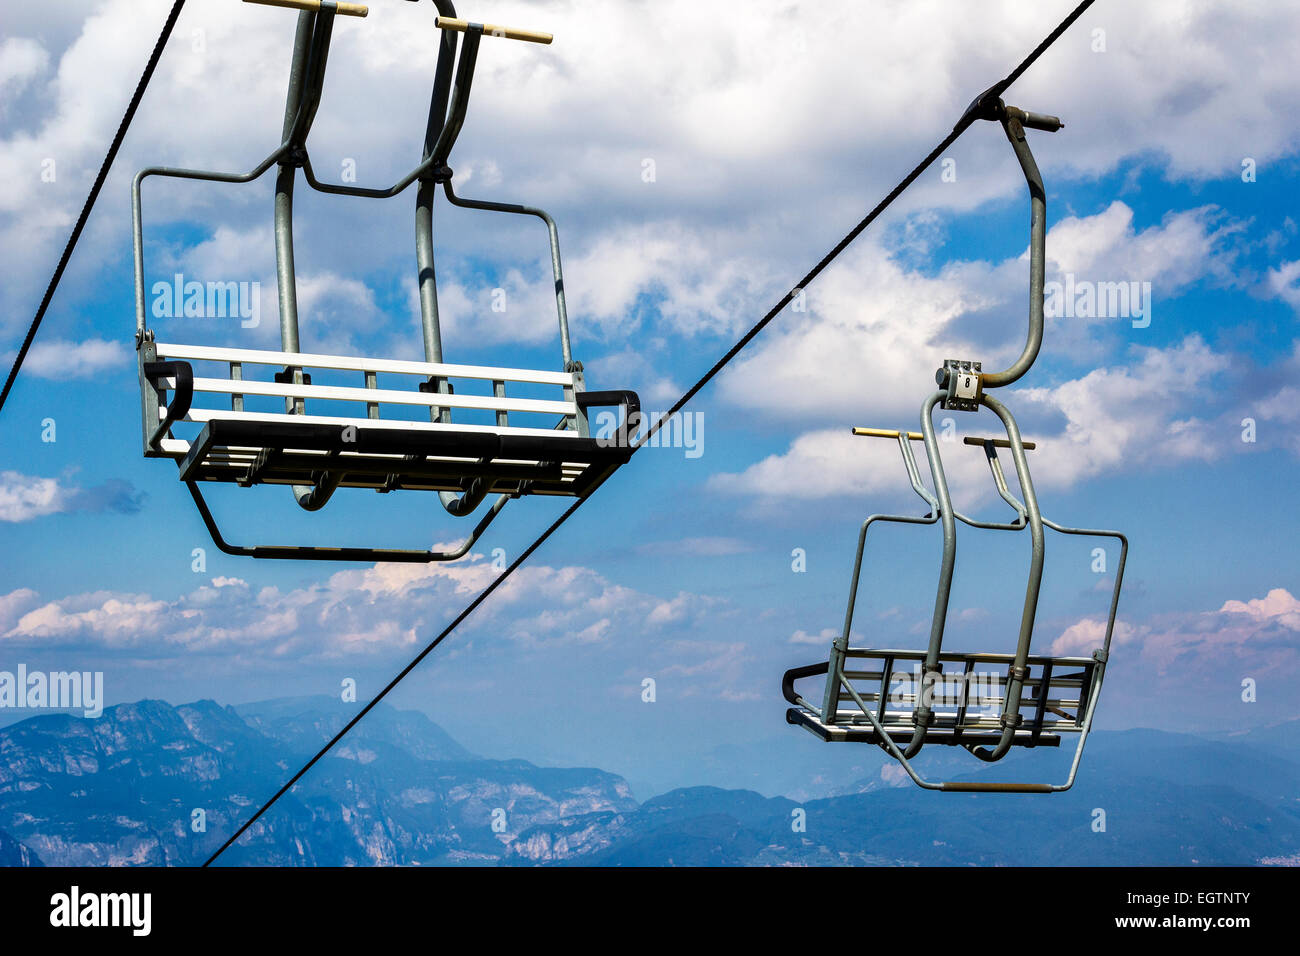 Sky Lift Seats on a Cloudy Sky in Italy Stock Photo, Royalty Free ...